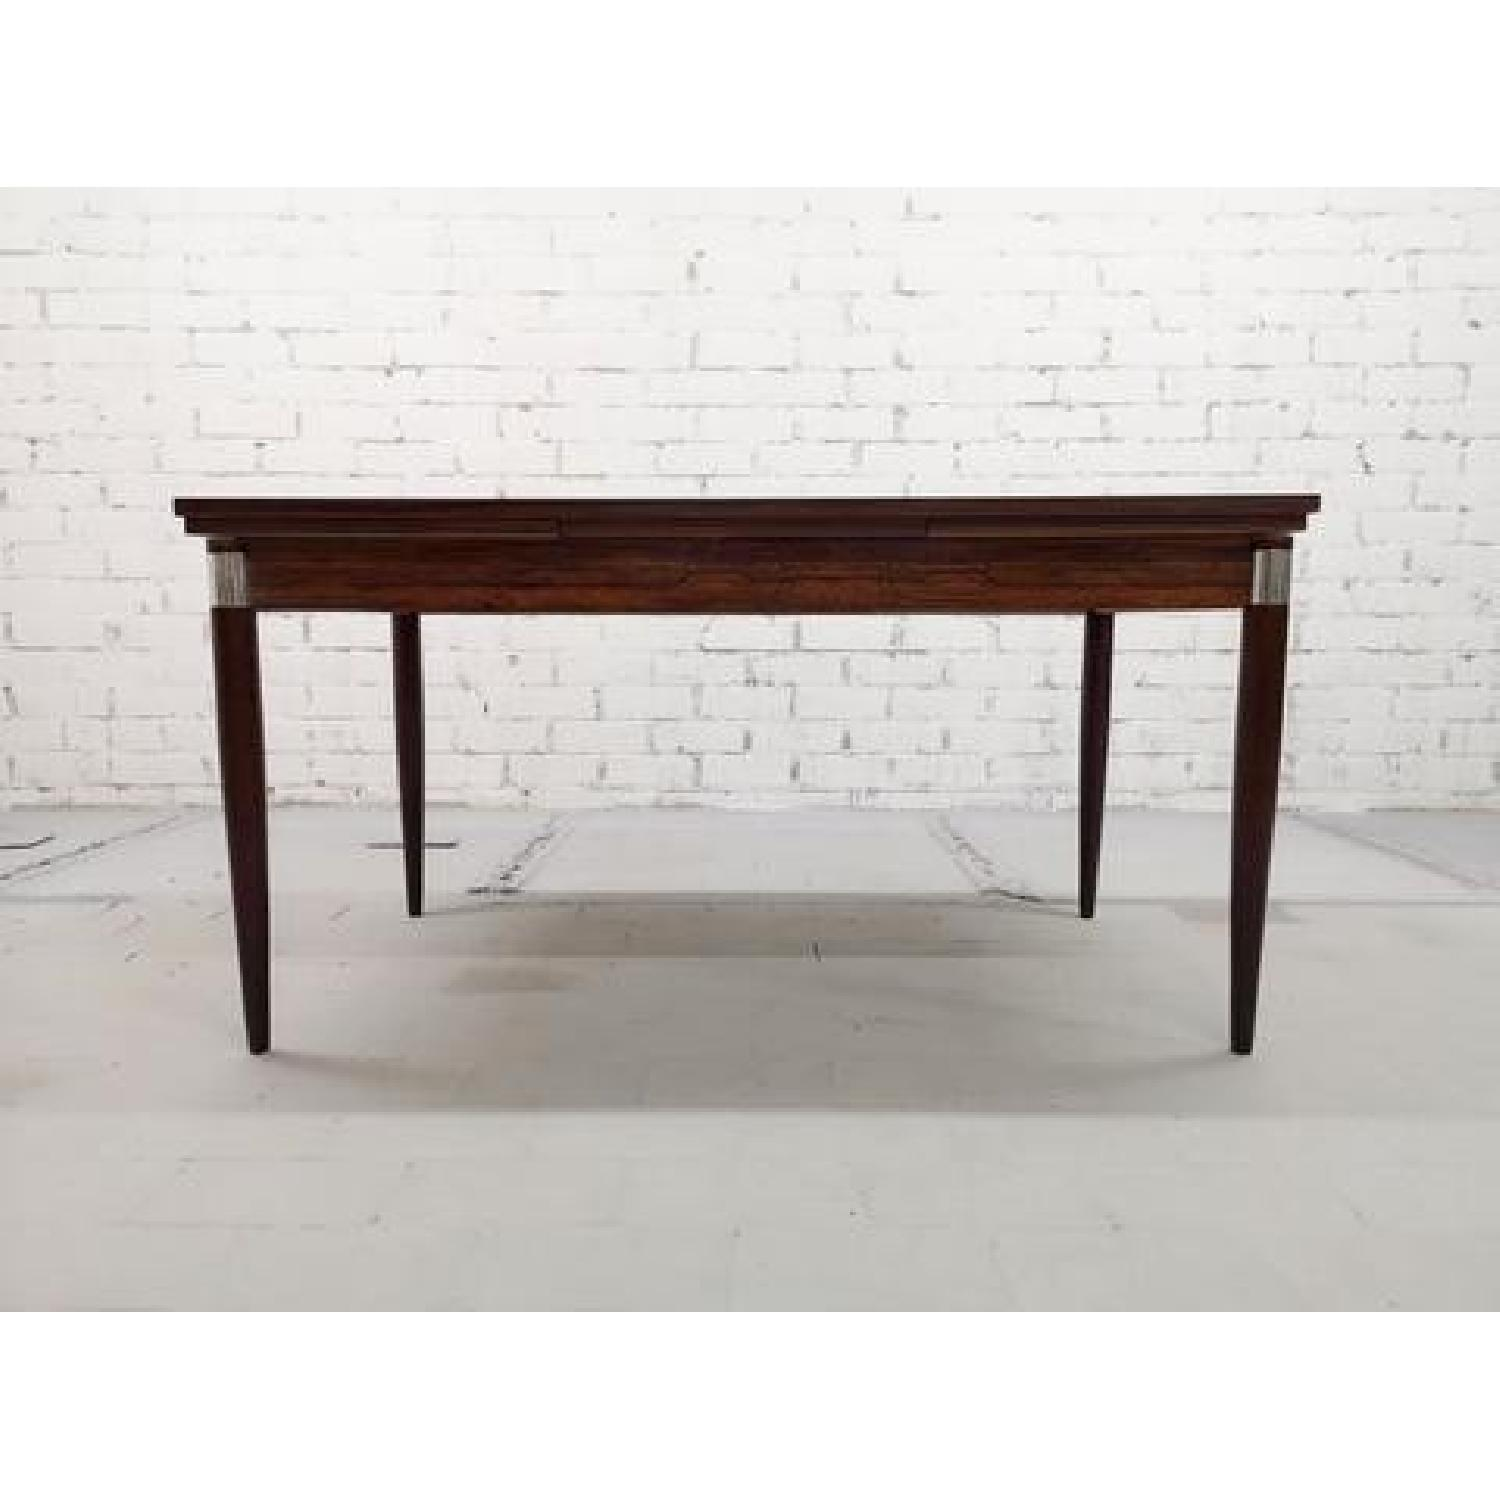 Mid-Century Modern Design Extendable Draw Leaf Dining Table - image-10